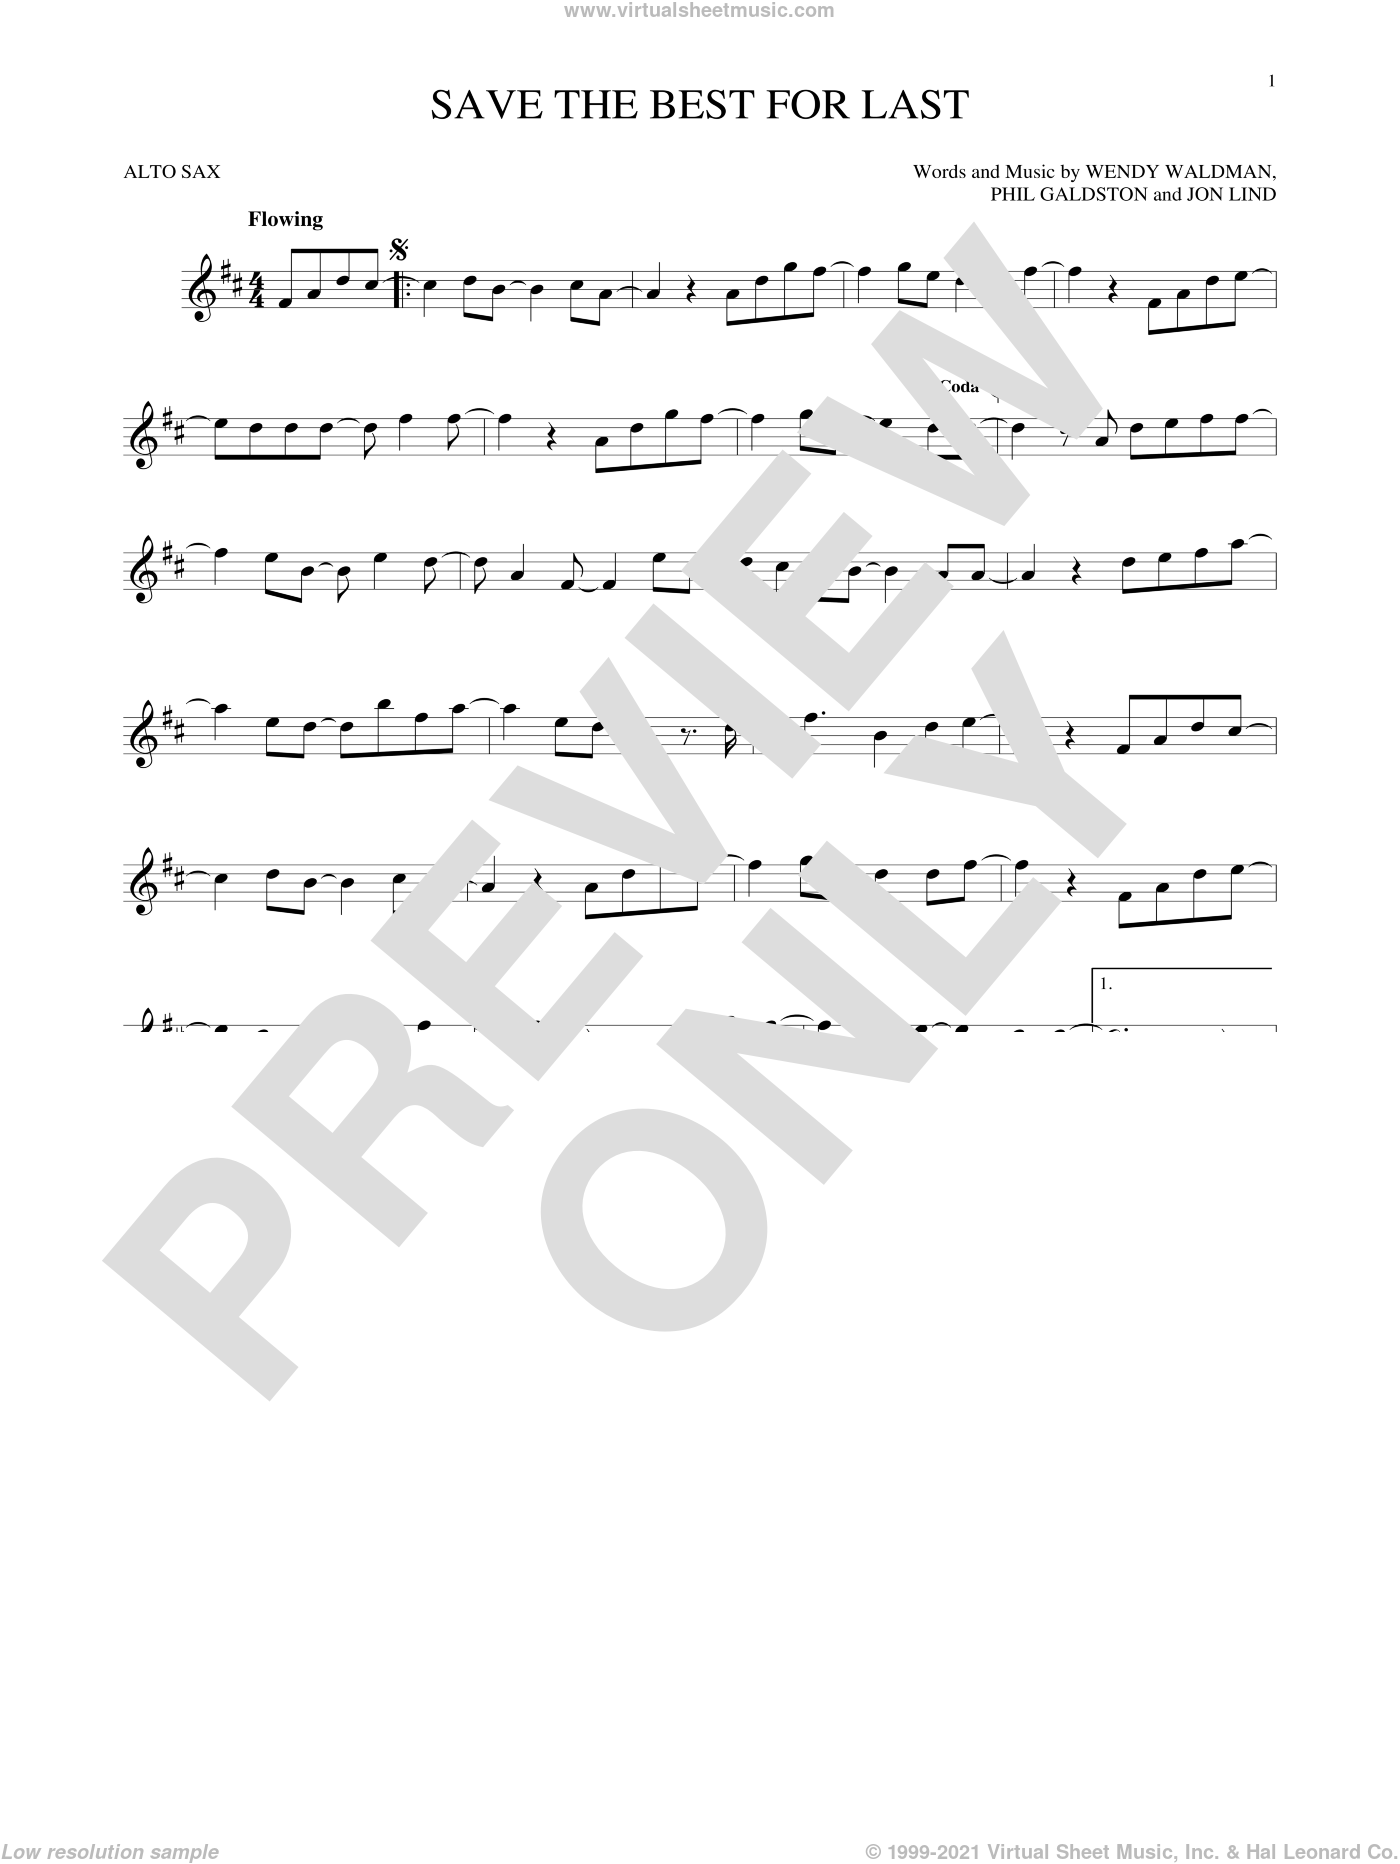 Save The Best For Last sheet music for alto saxophone solo by Wendy Waldman, Vanessa Williams and Jon Lind. Score Image Preview.